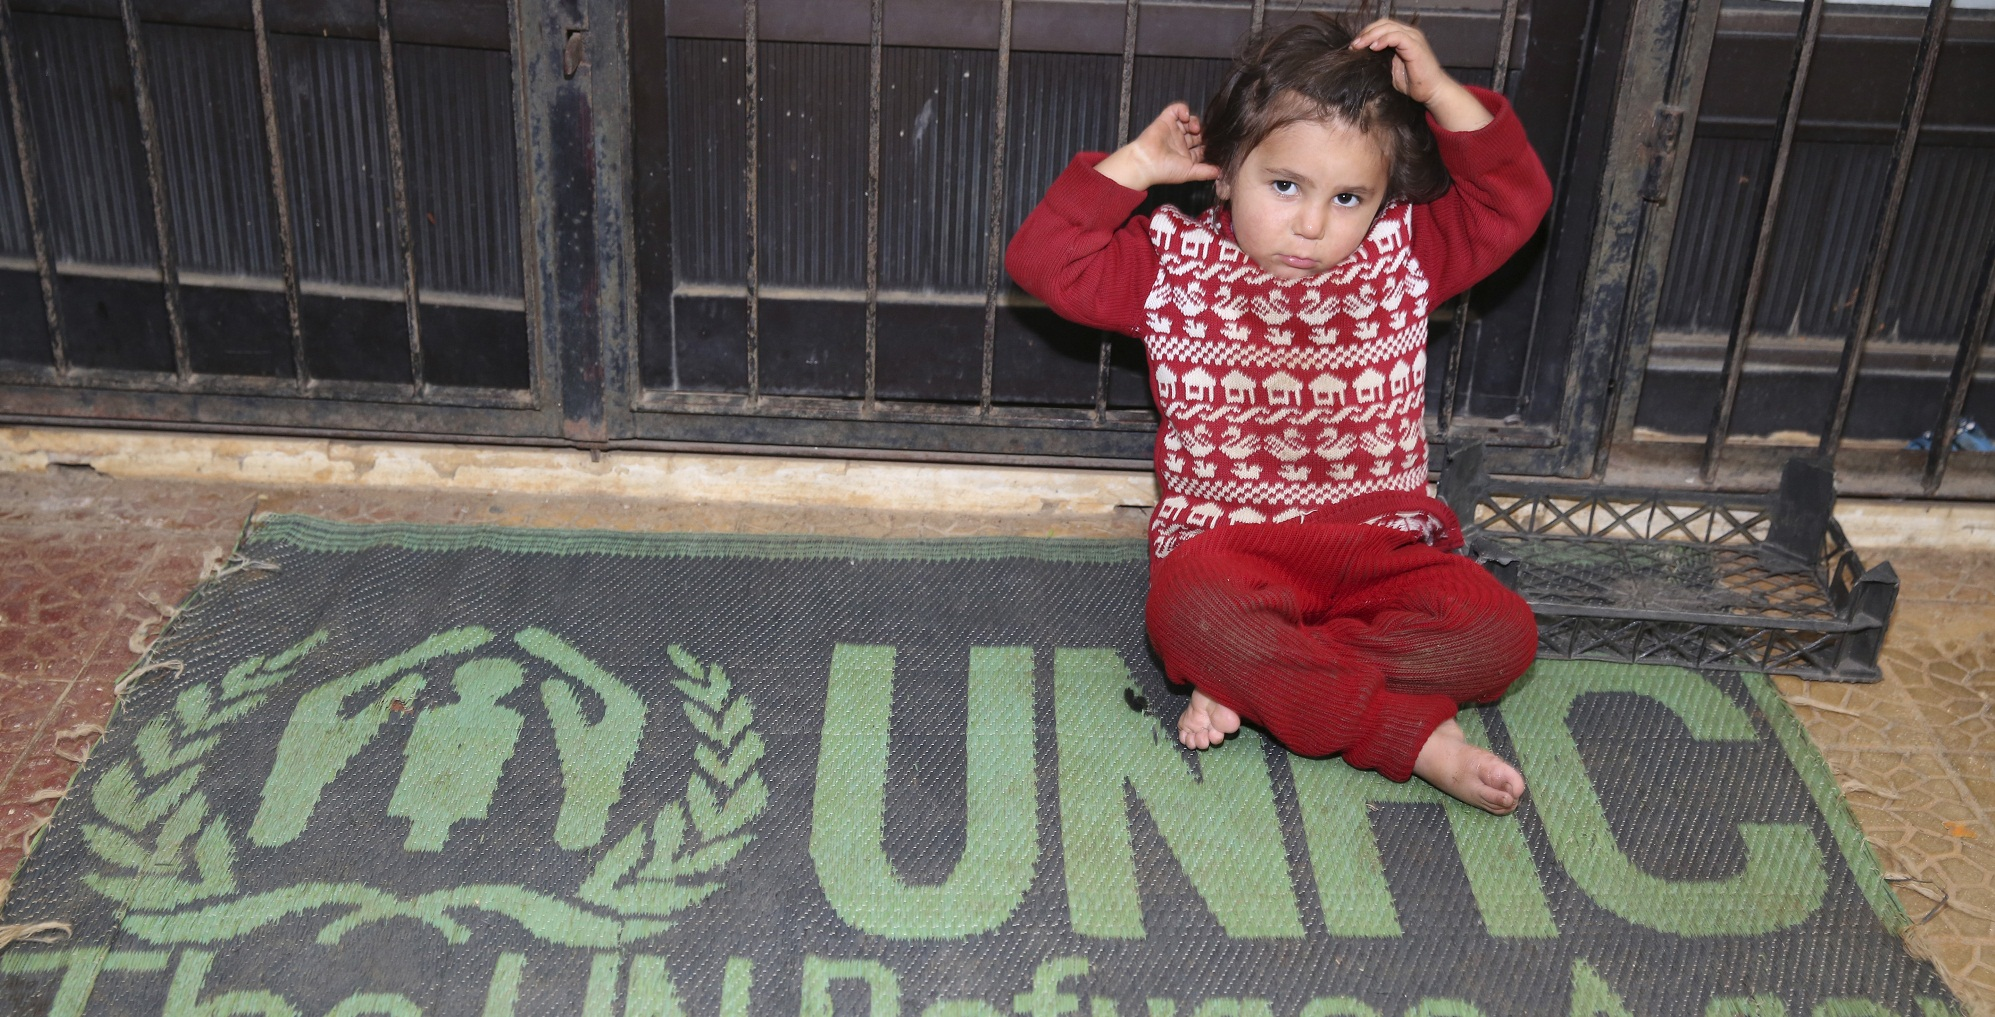 UNHCR Expands Winter Assistance to Help 4.6 Million in Syria, Iraq and Region